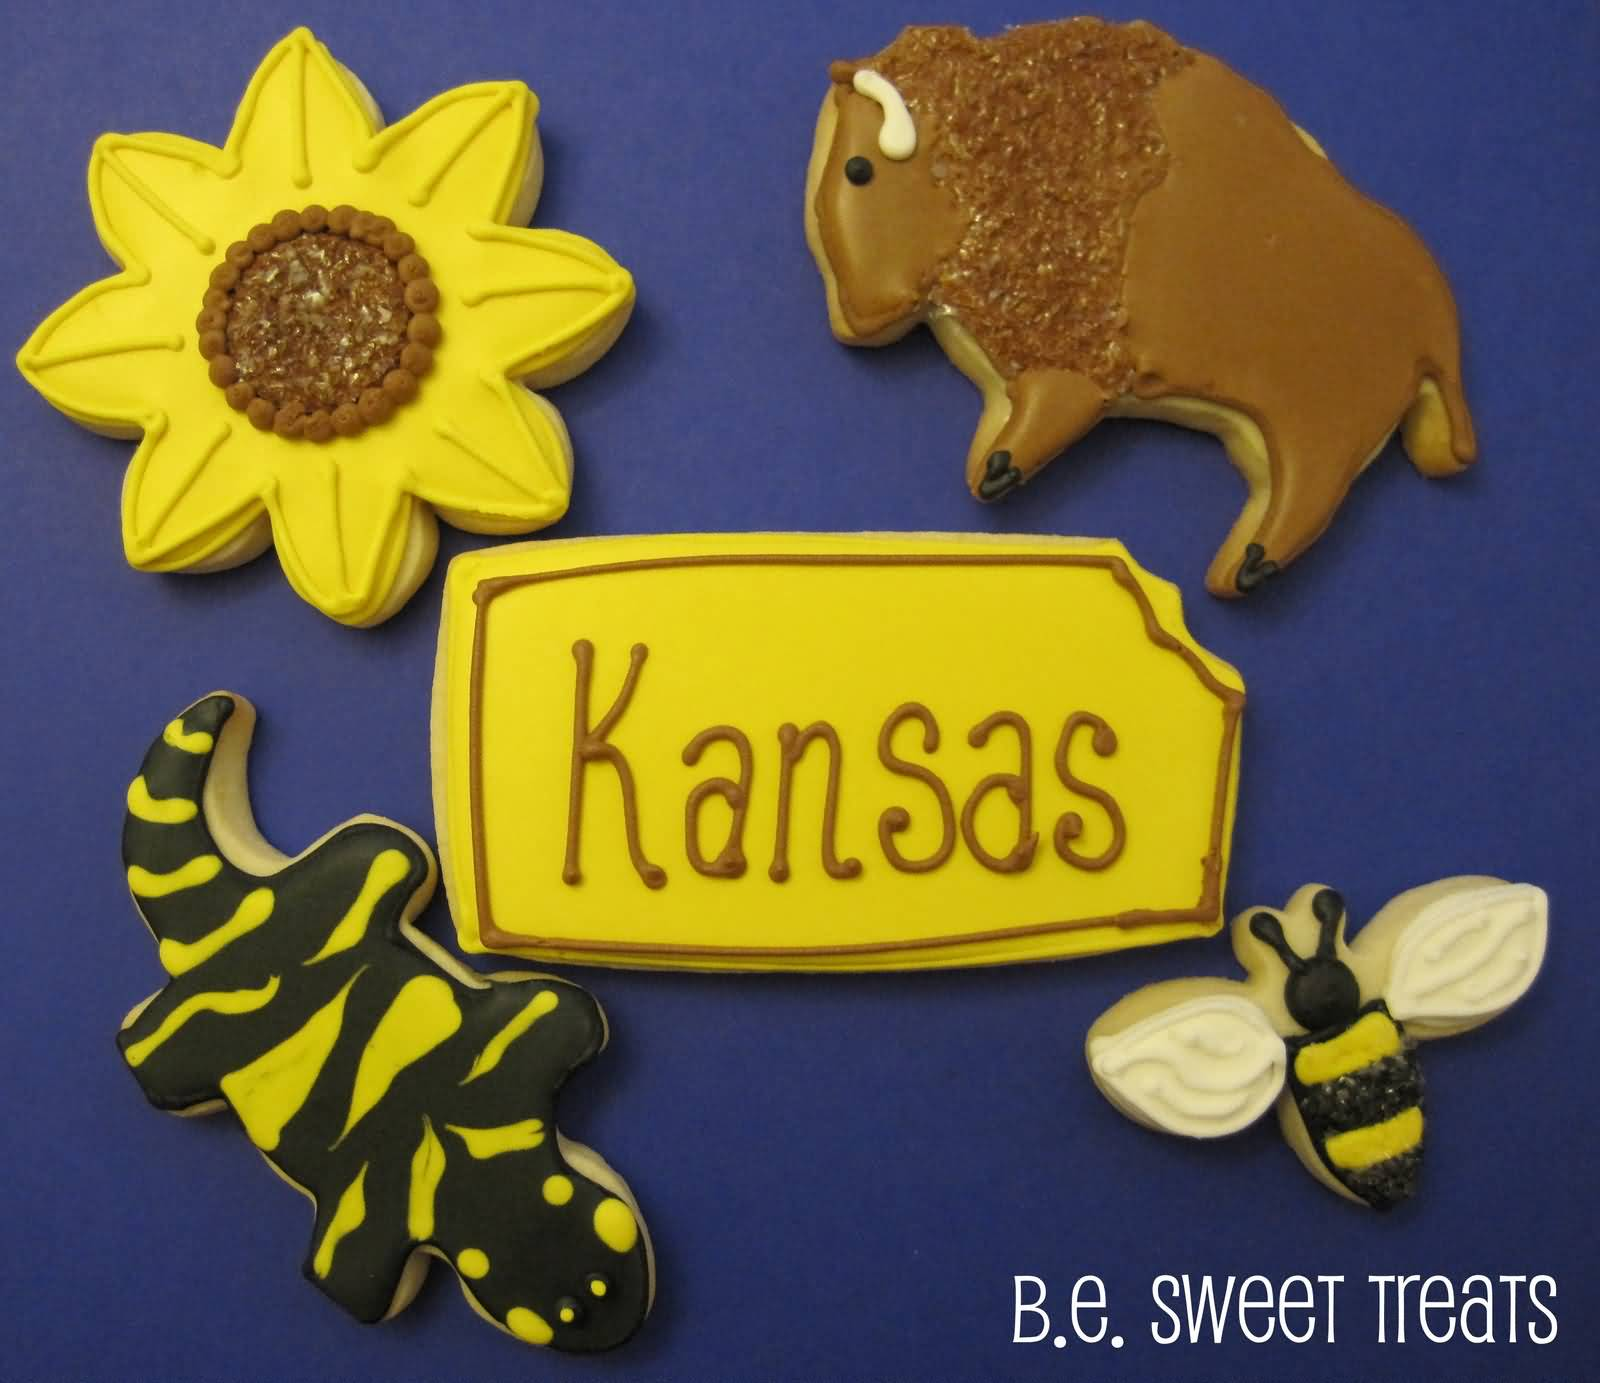 8-Happy Kansas Day Wishes